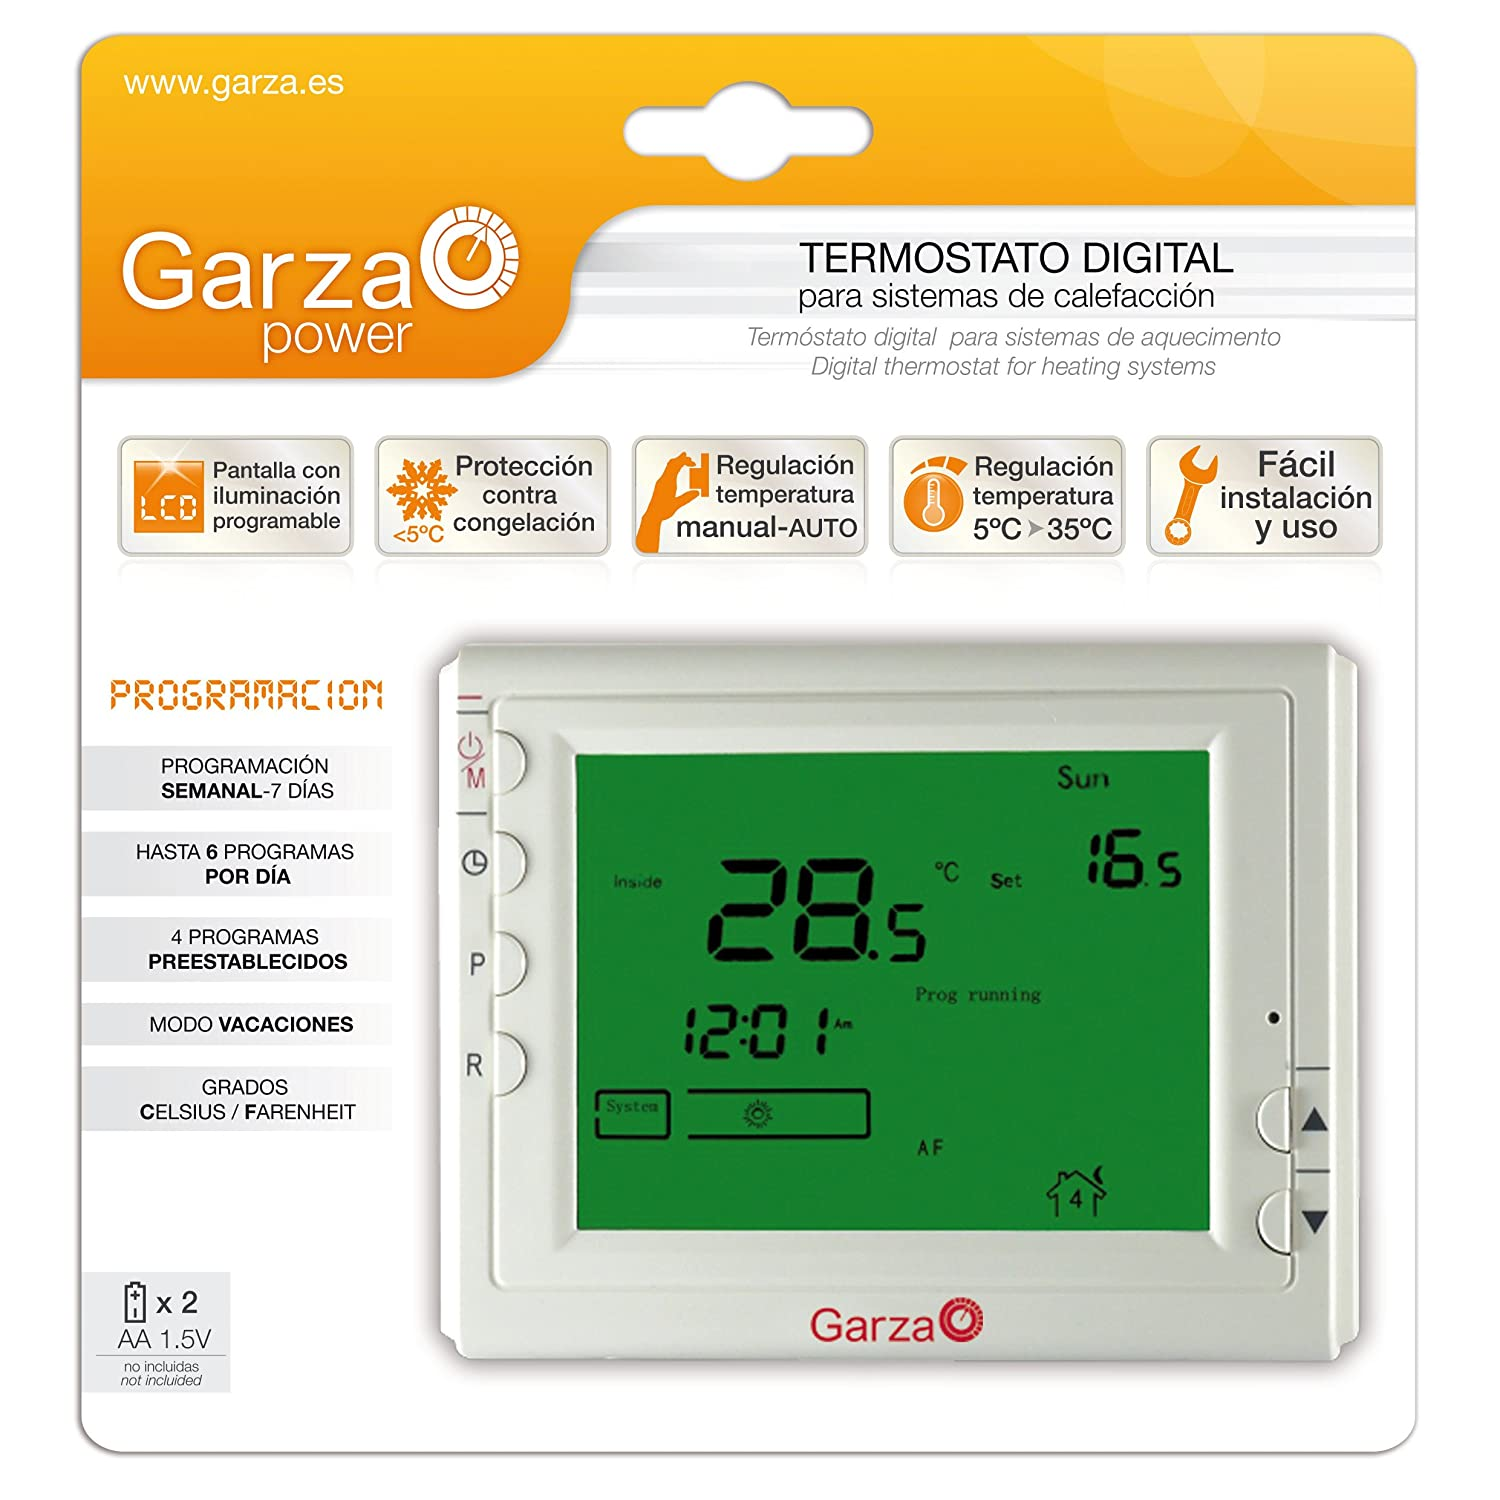 Garza Power - Termostato Digital programable para Caldera y calefacción. Cronotermostato Digital Controlador de Temperatura.: Amazon.es: Bricolaje y ...